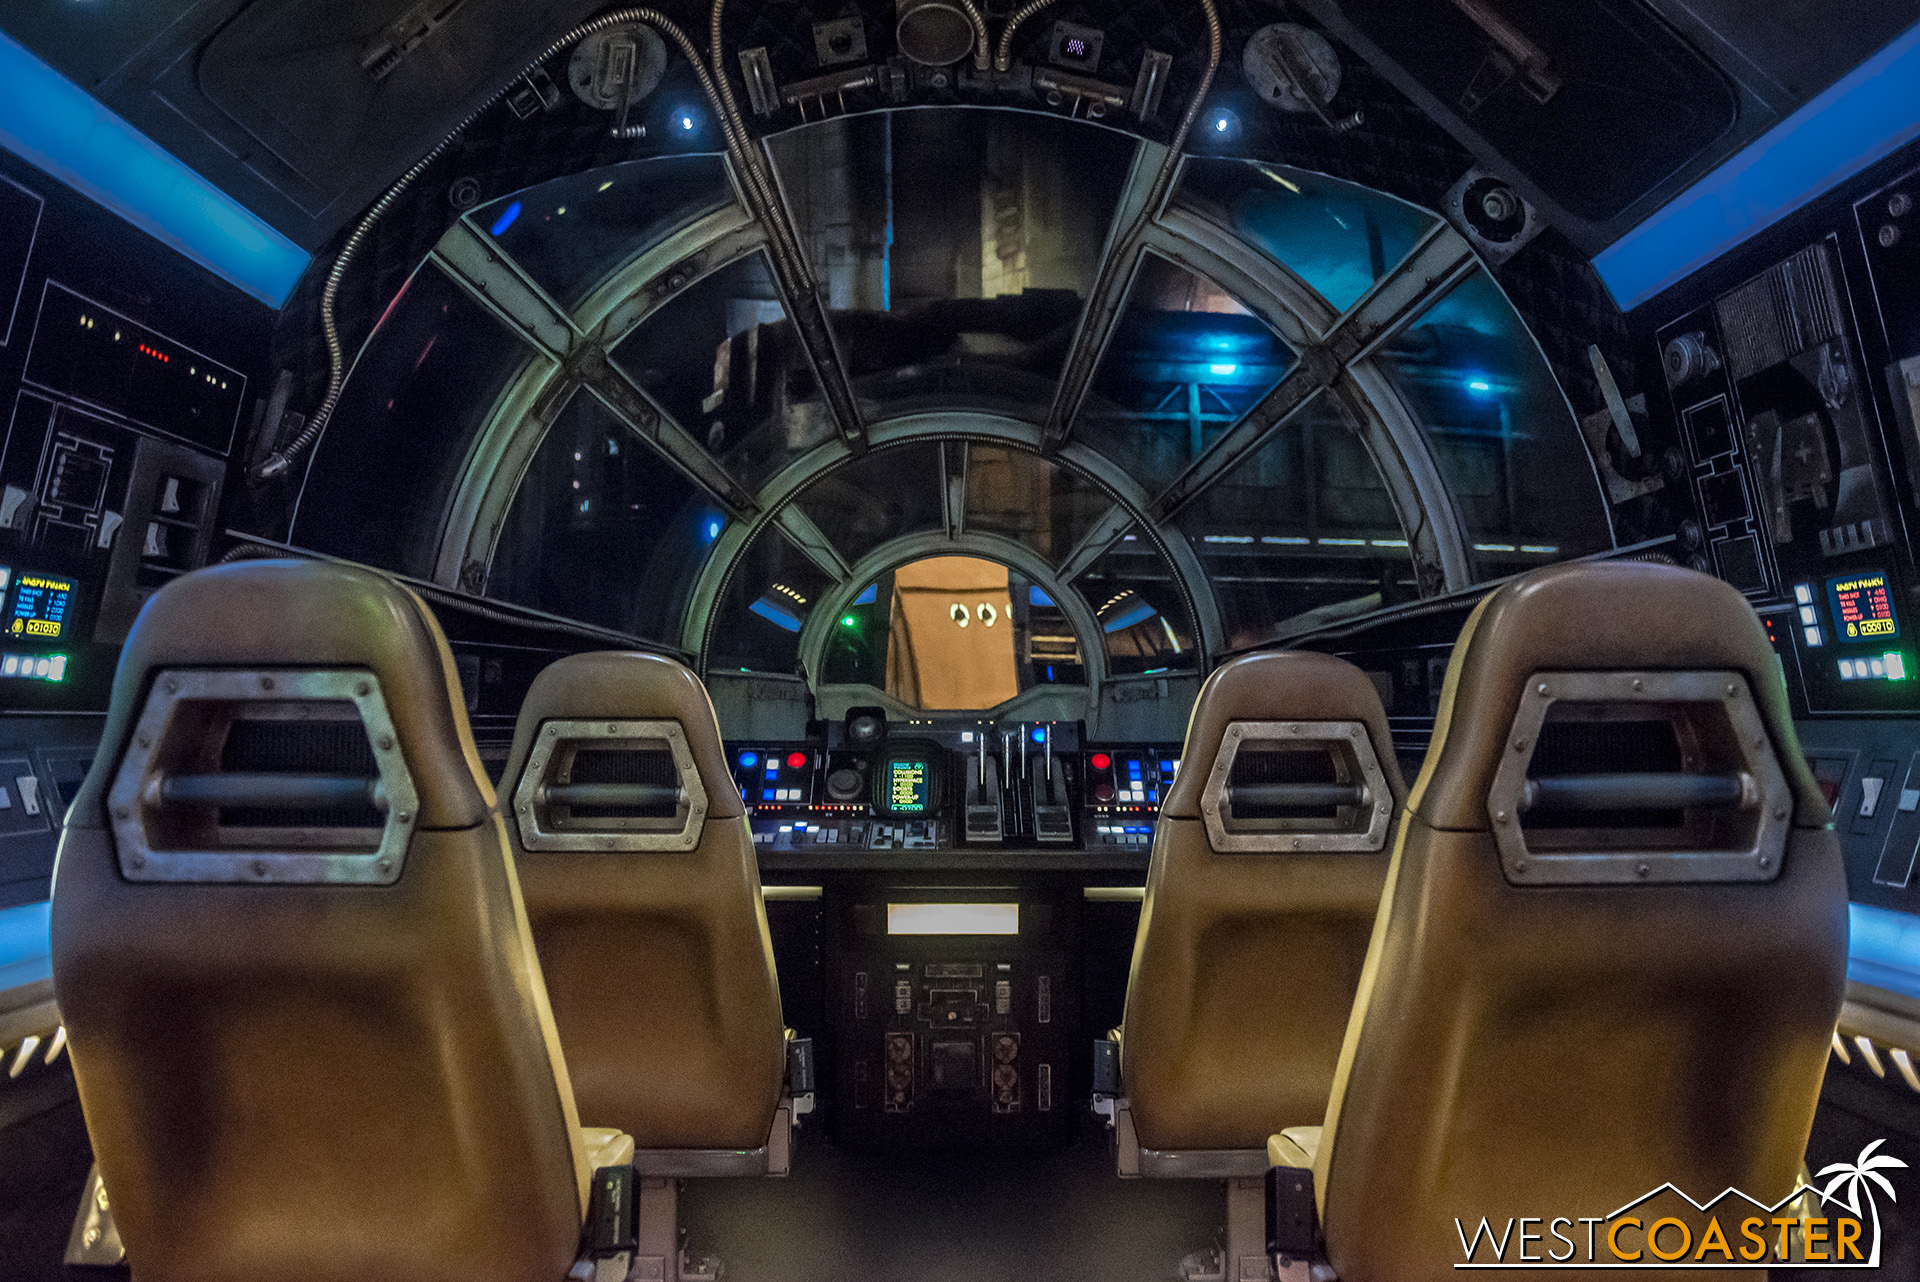 Entering the cockpit of the Millennium Falcon.